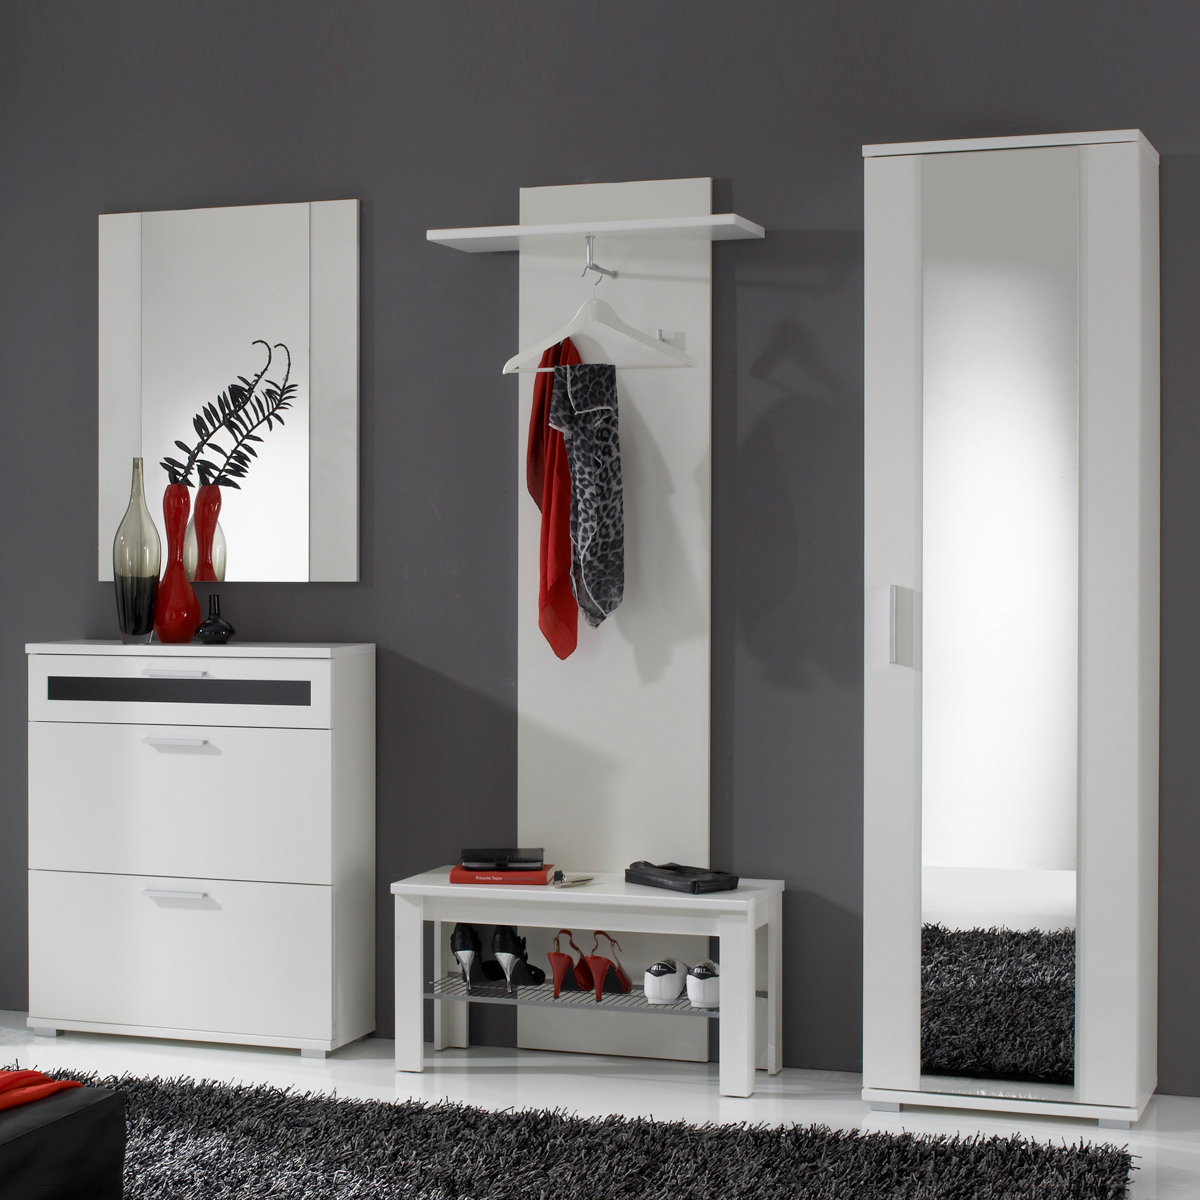 garderobe solido set mit flur schrank schuhkommode. Black Bedroom Furniture Sets. Home Design Ideas